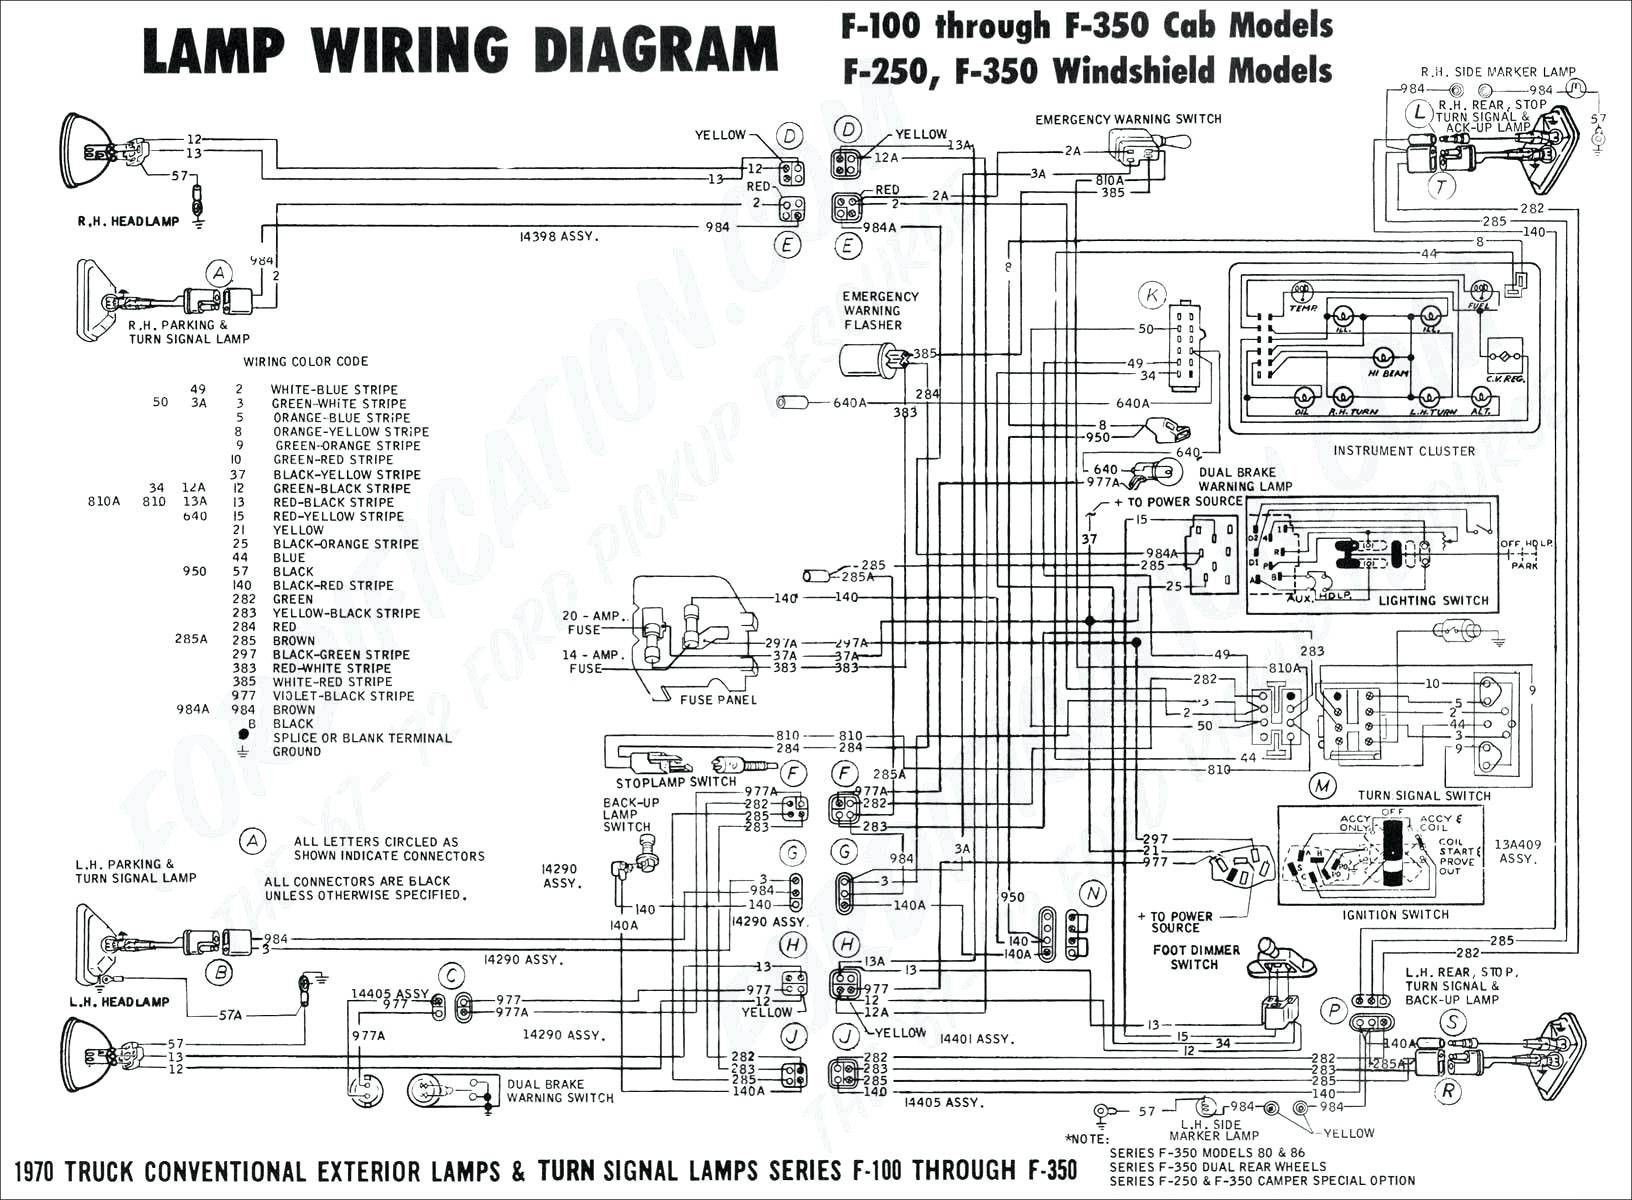 1991 Honda Accord Wiring Diagram from detoxicrecenze.com